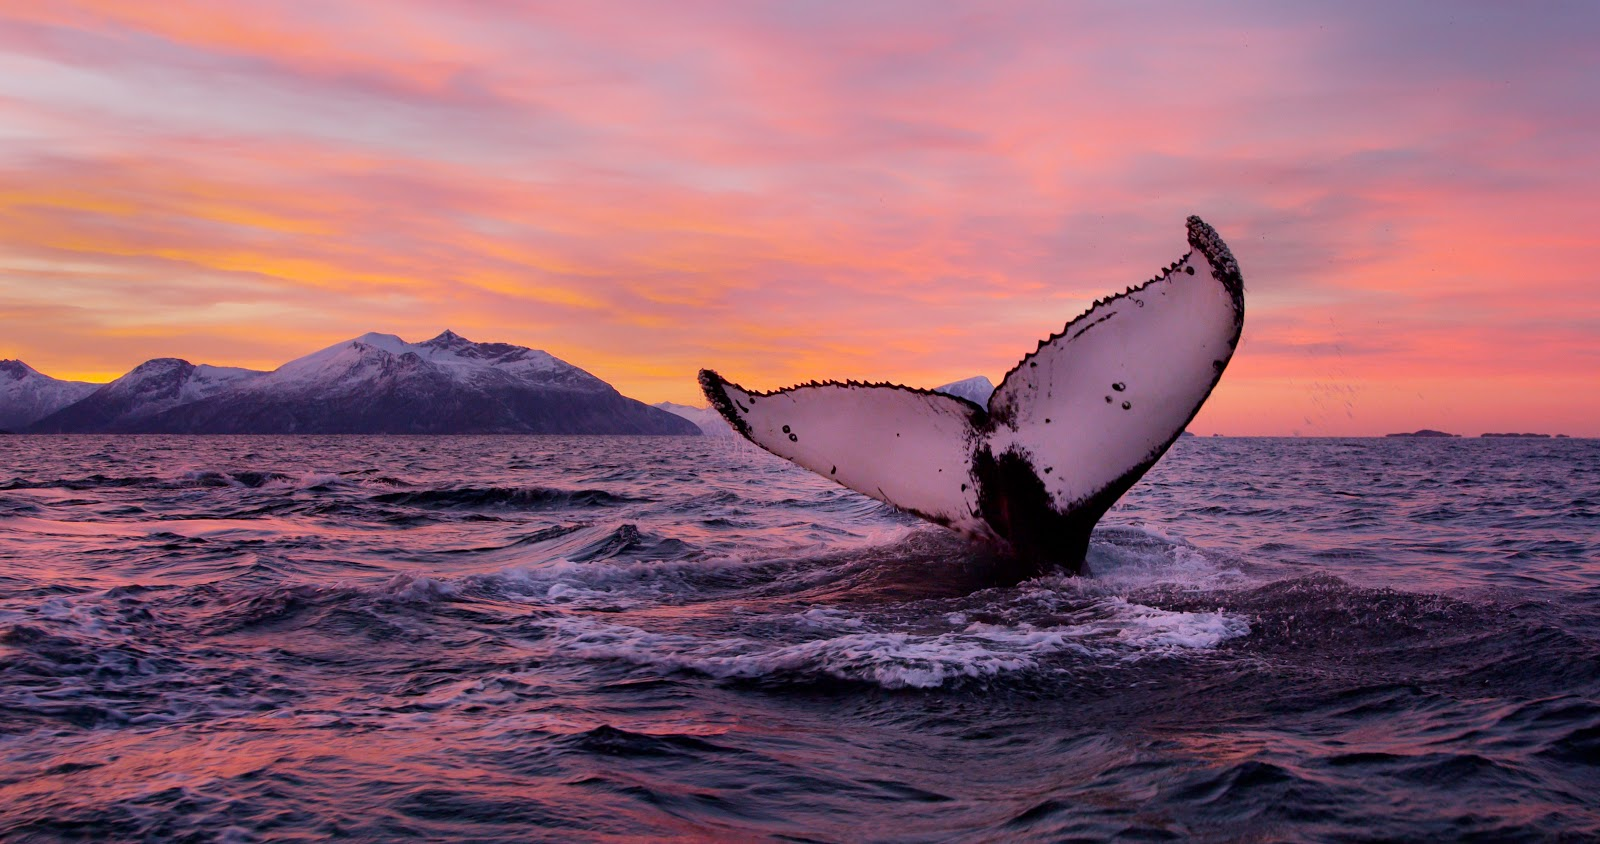 Humpback whale watching in Vesteralen. Photo: Asgeir Helgestad Arctic Light and AS Visitnorway.com. Unauthorized use is prohibited.